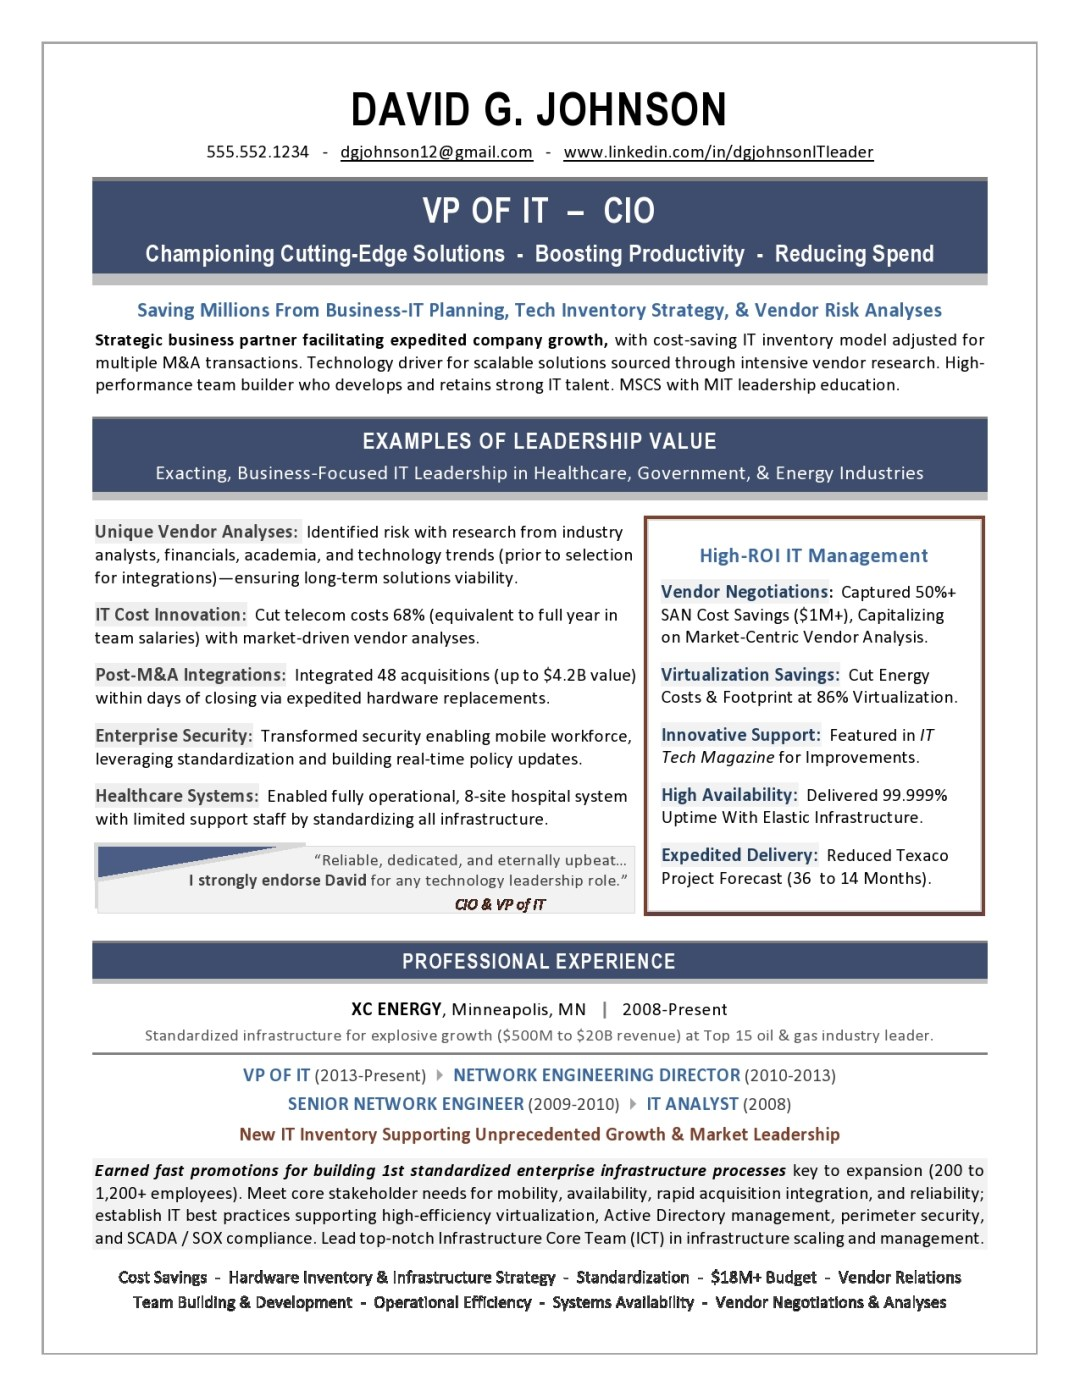 VP of IT Resume Sample Page 1